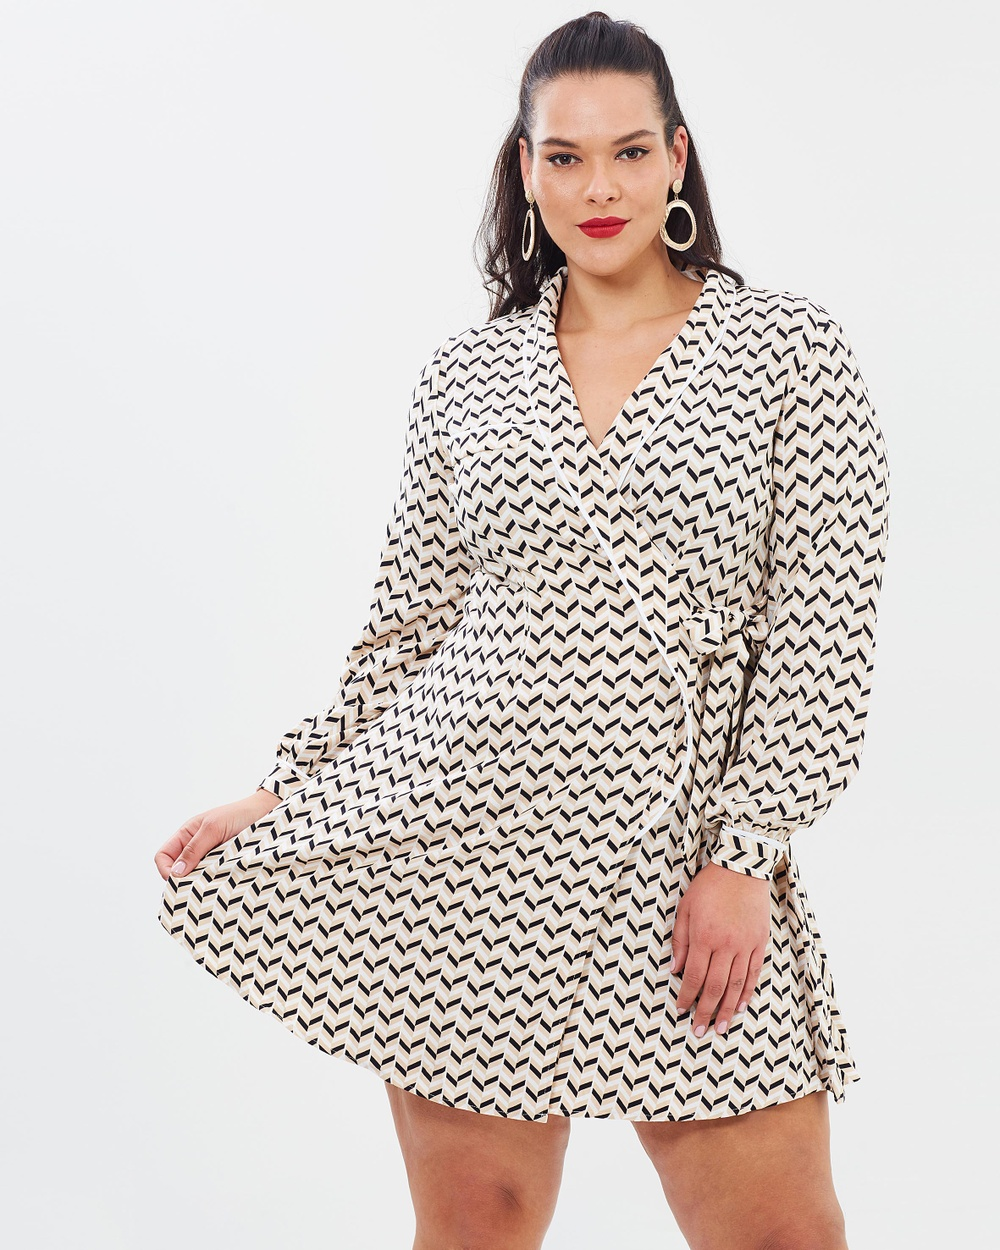 Atmos & Here Curvy ICONIC EXCLUSIVE Kara PJ Dress Dresses Chevron Print ICONIC EXCLUSIVE Kara PJ Dress